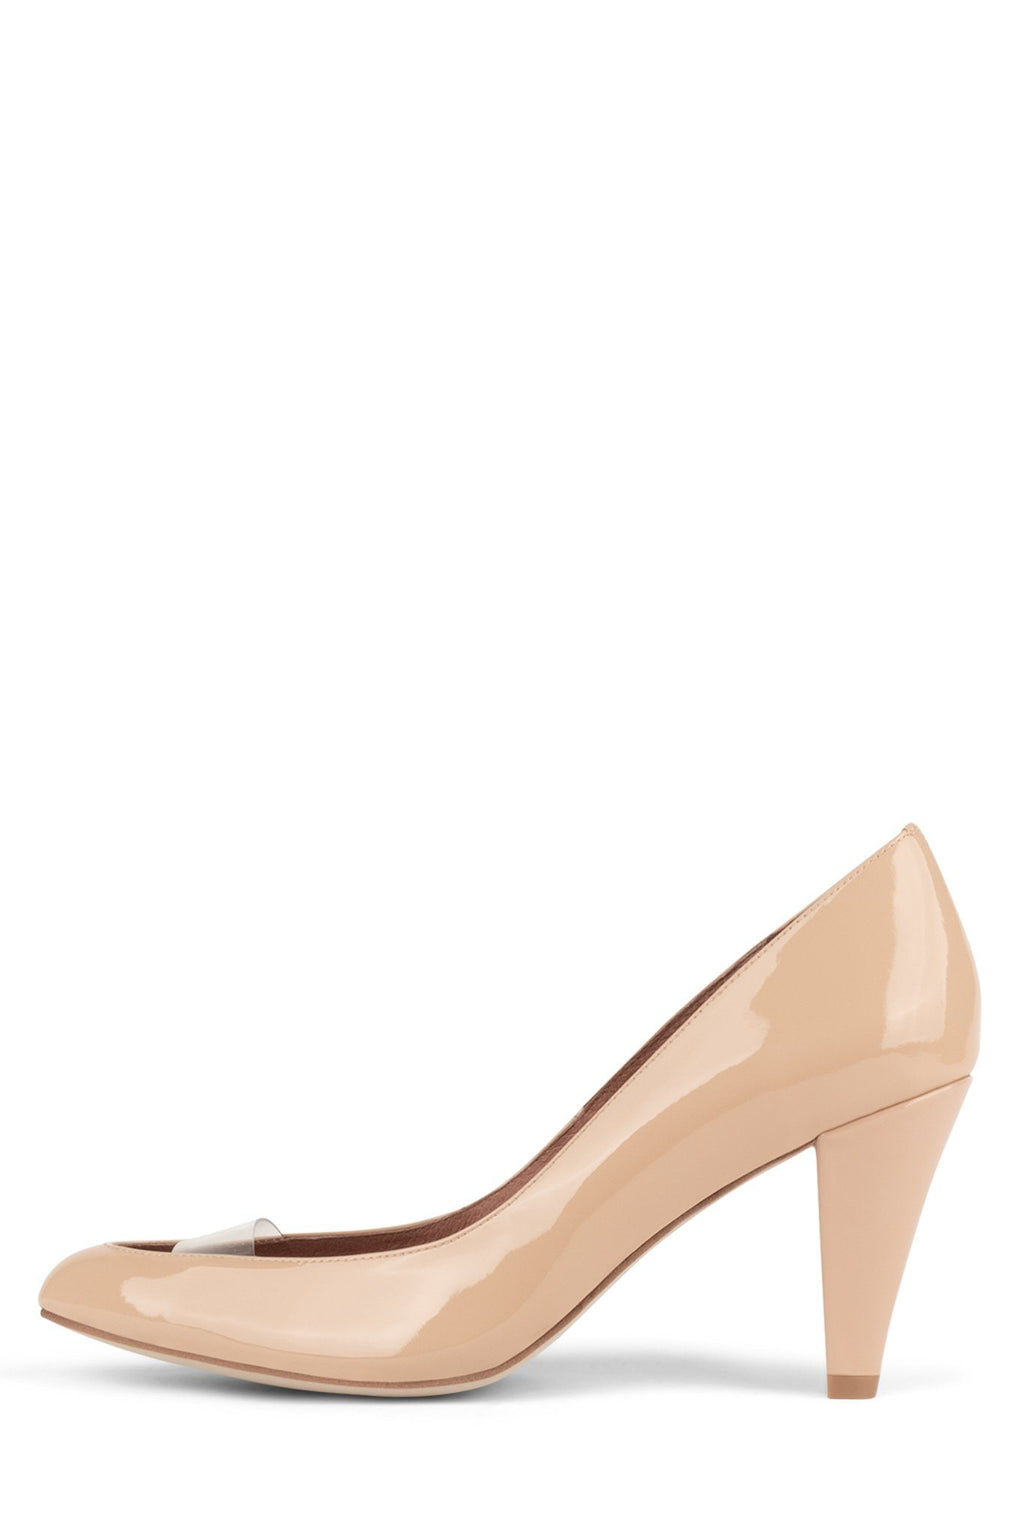 LASSIE Pump ST Nude Patent Clear 6